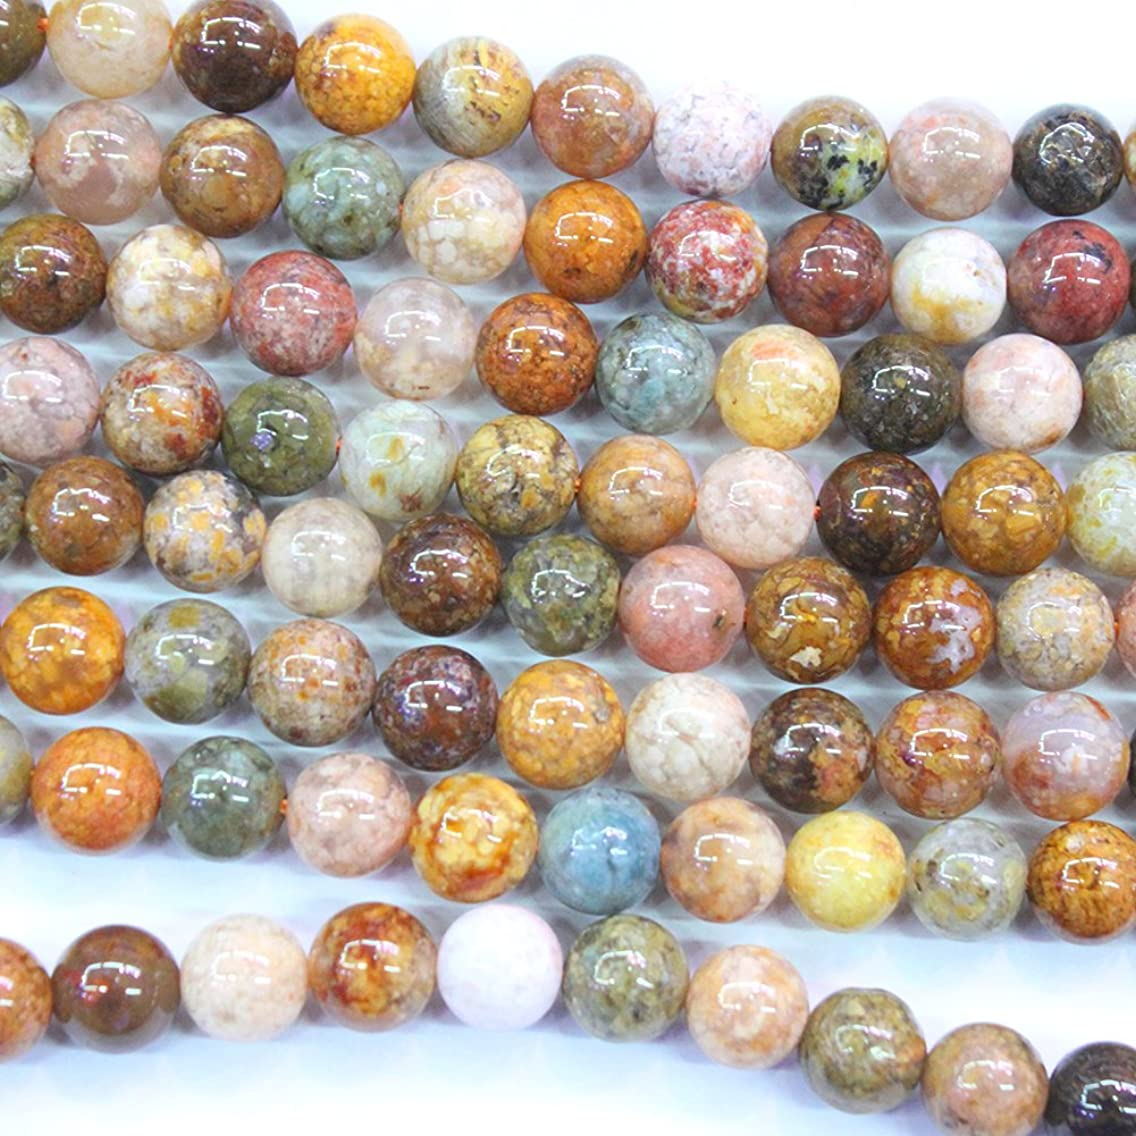 Natural Colorful Ocean Agate Round Gemstone Beads Jewerlry Making Findings (8mm) lvbqaqk60